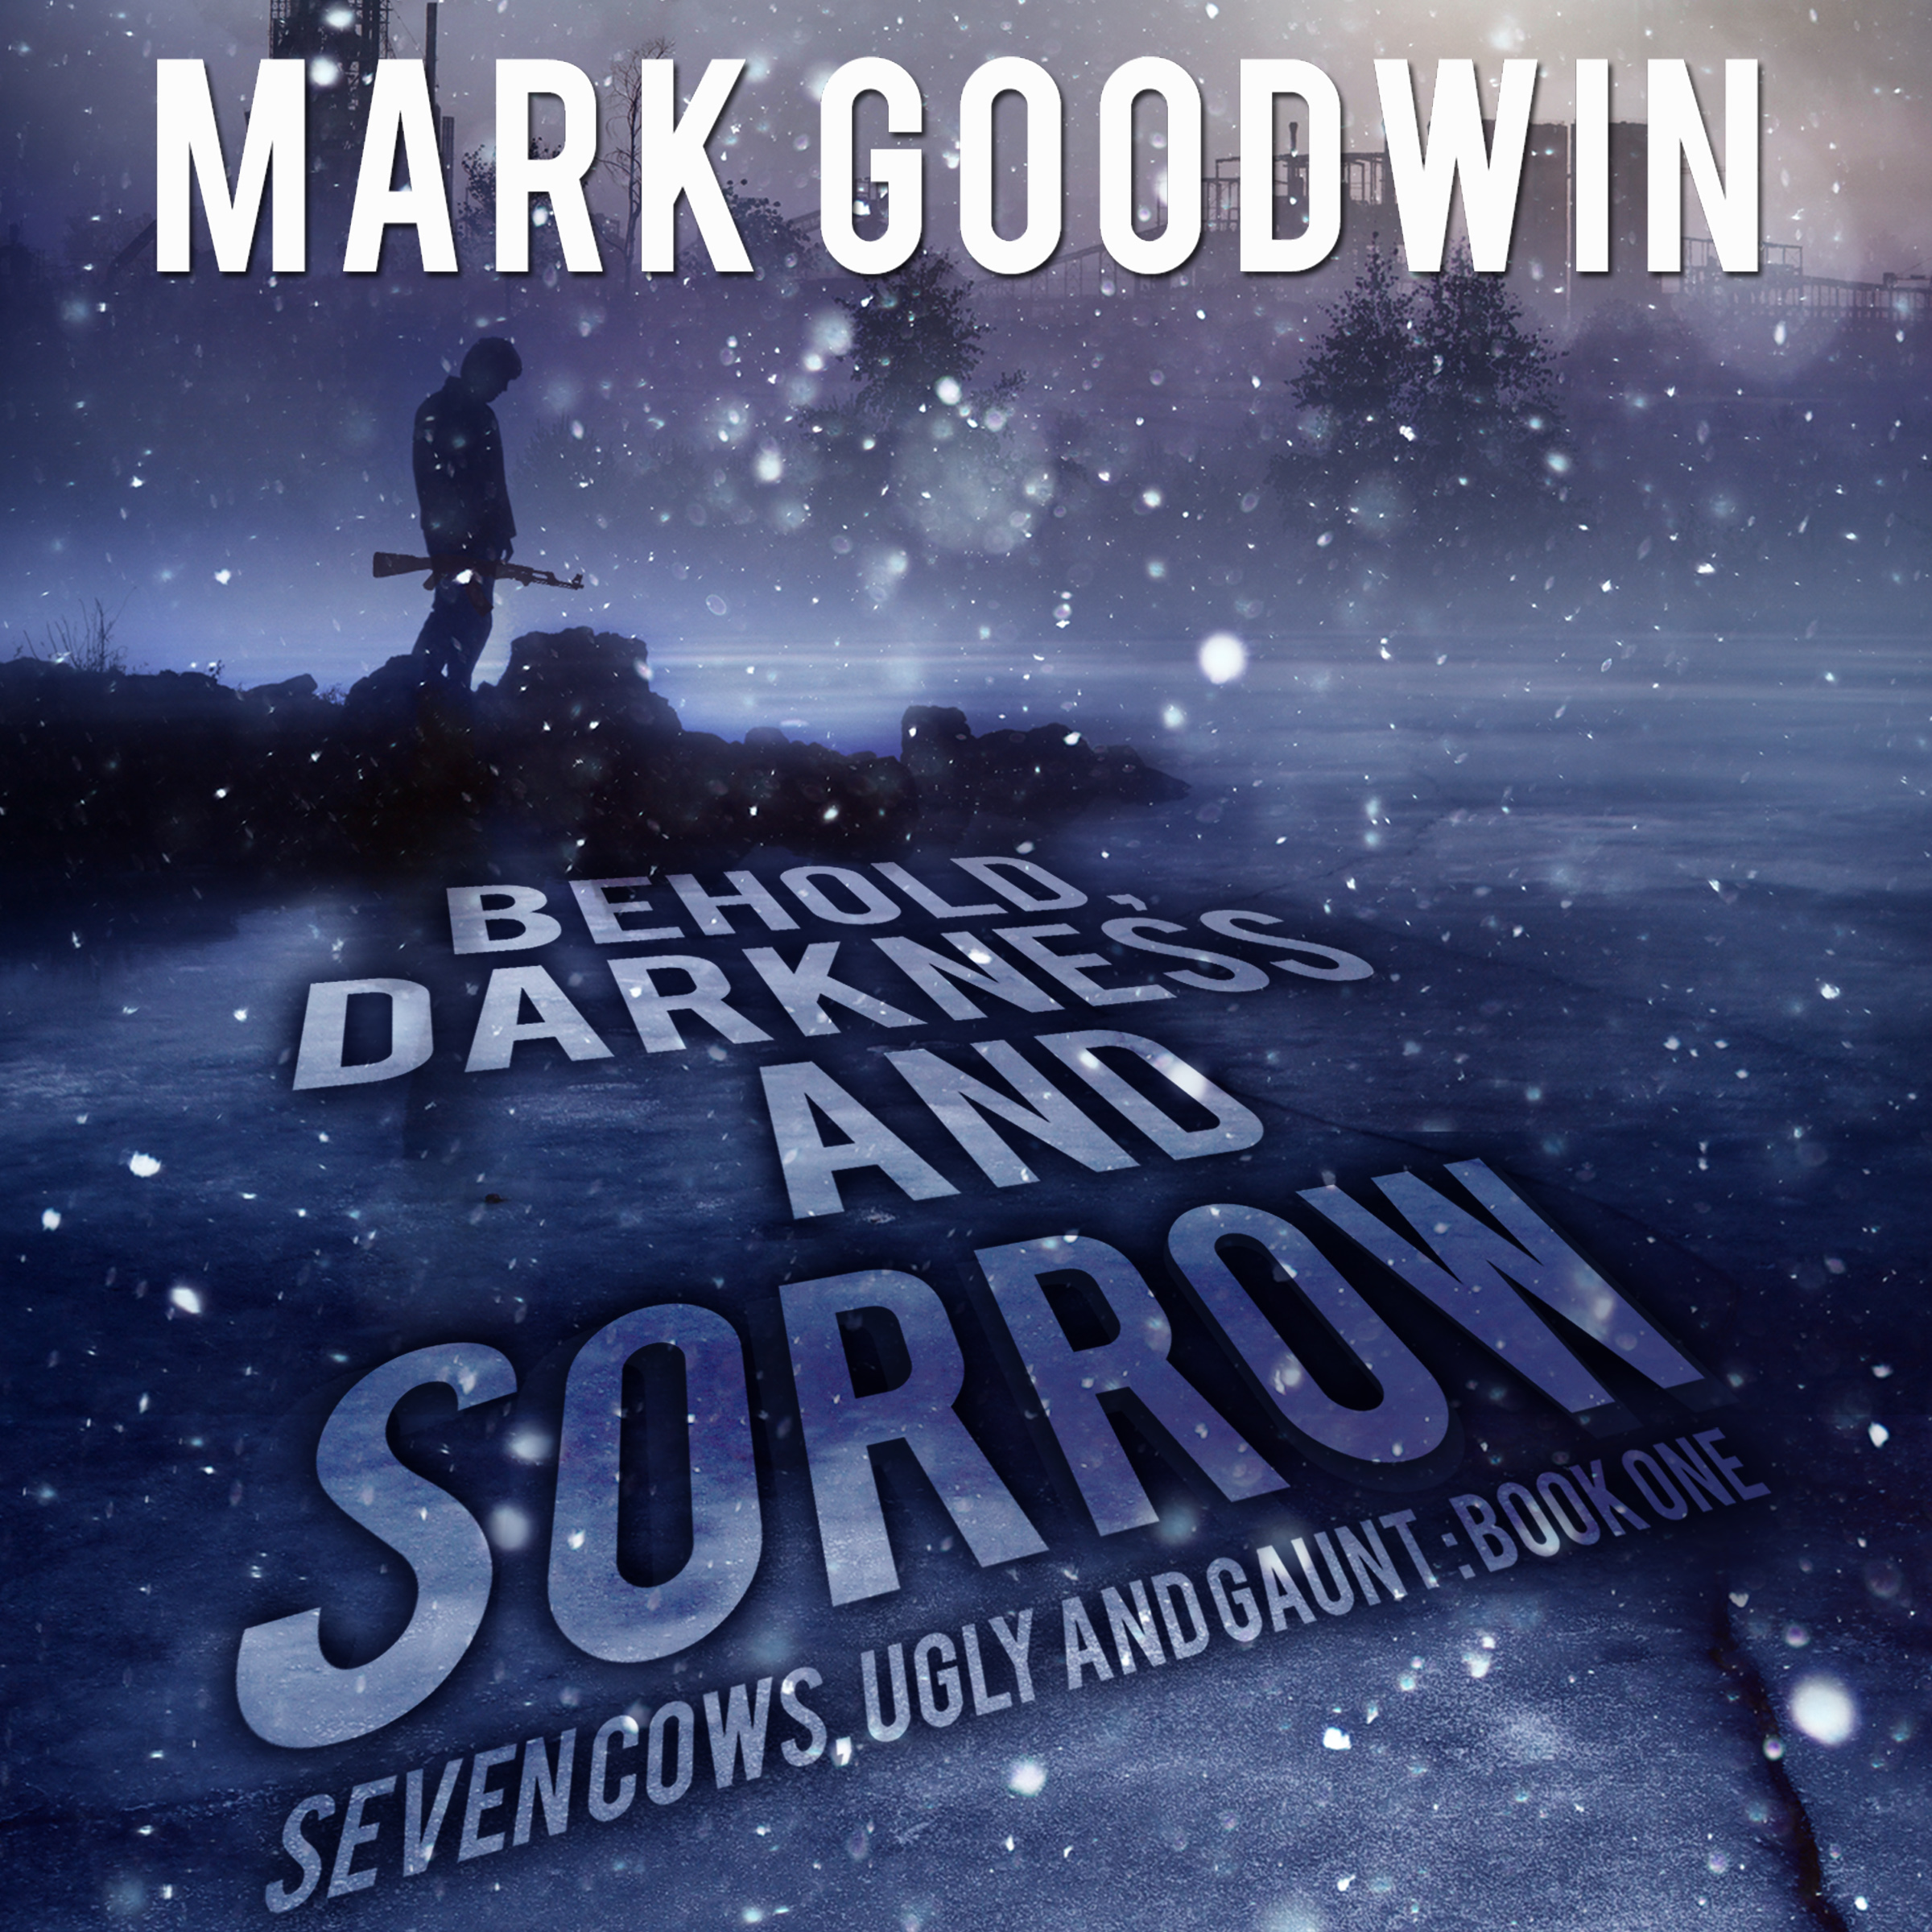 Behold, Darkness and Sorrow: Seven Cows, Ugly and Gaunt - Review